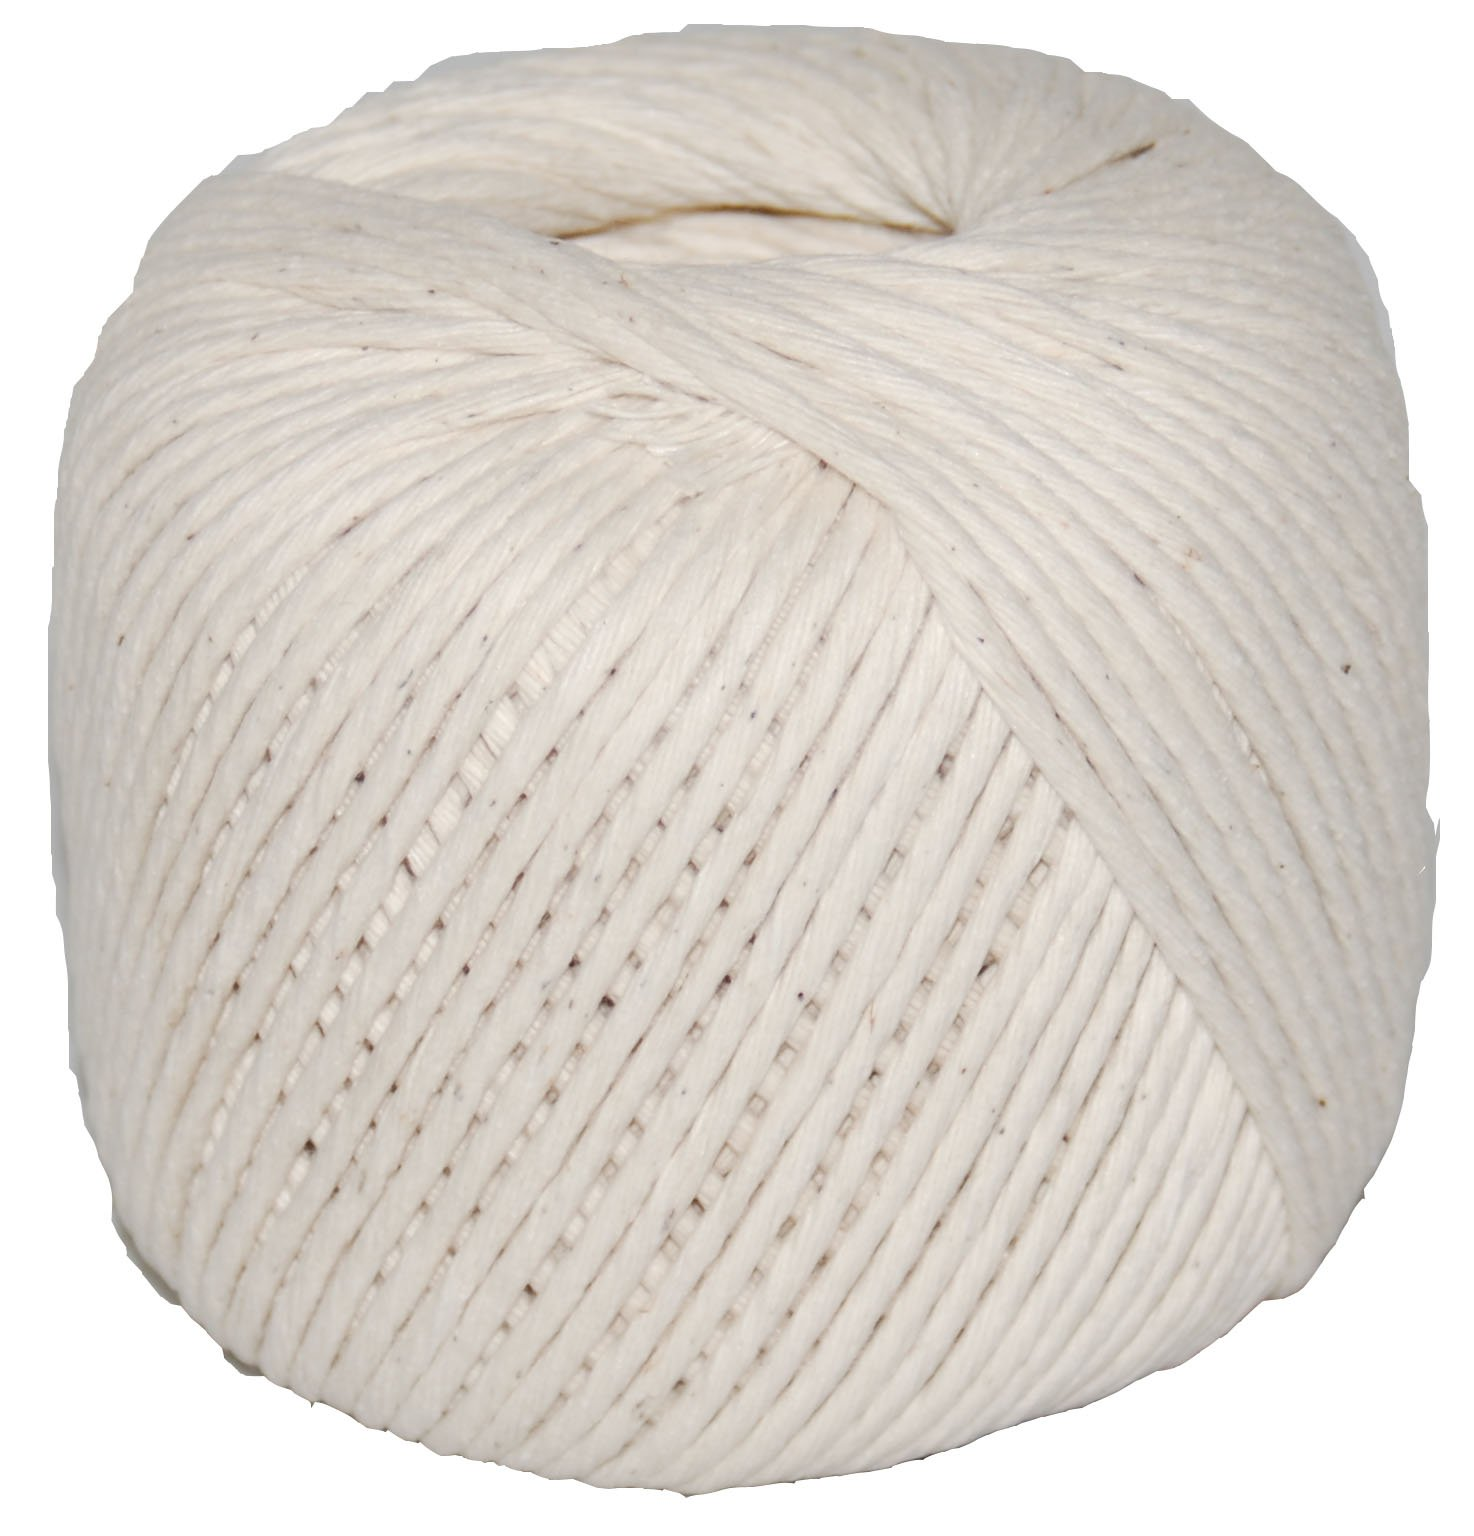 T.W . Evans Cordage 09-188 Number-18 Polished Beef Cotton Twine with 690-Feet Ball by T.W . Evans Cordage Co.